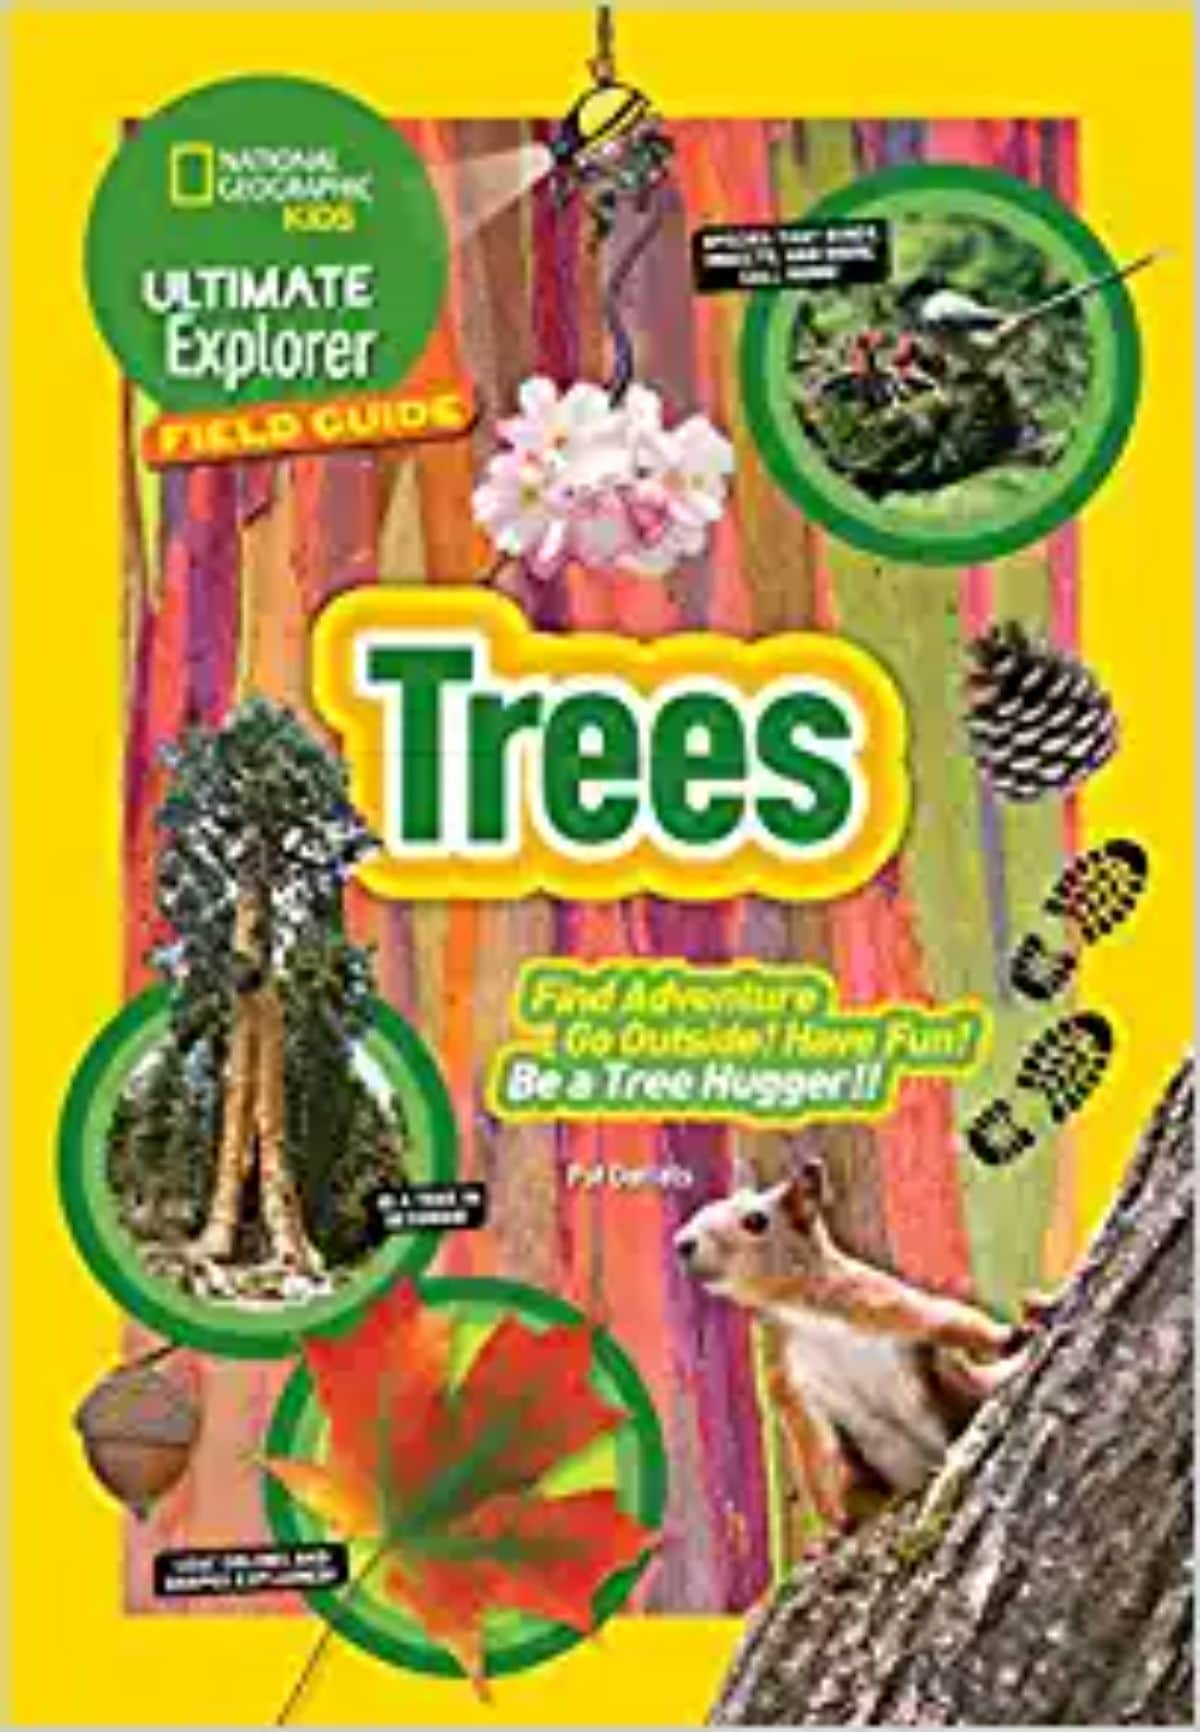 """the front cover of a yellow book titled """"trees: Find adventure, Go outside, have fun, be a tree hugger!"""" IMages of a squirrel, trees, and various leaves are scattered around"""